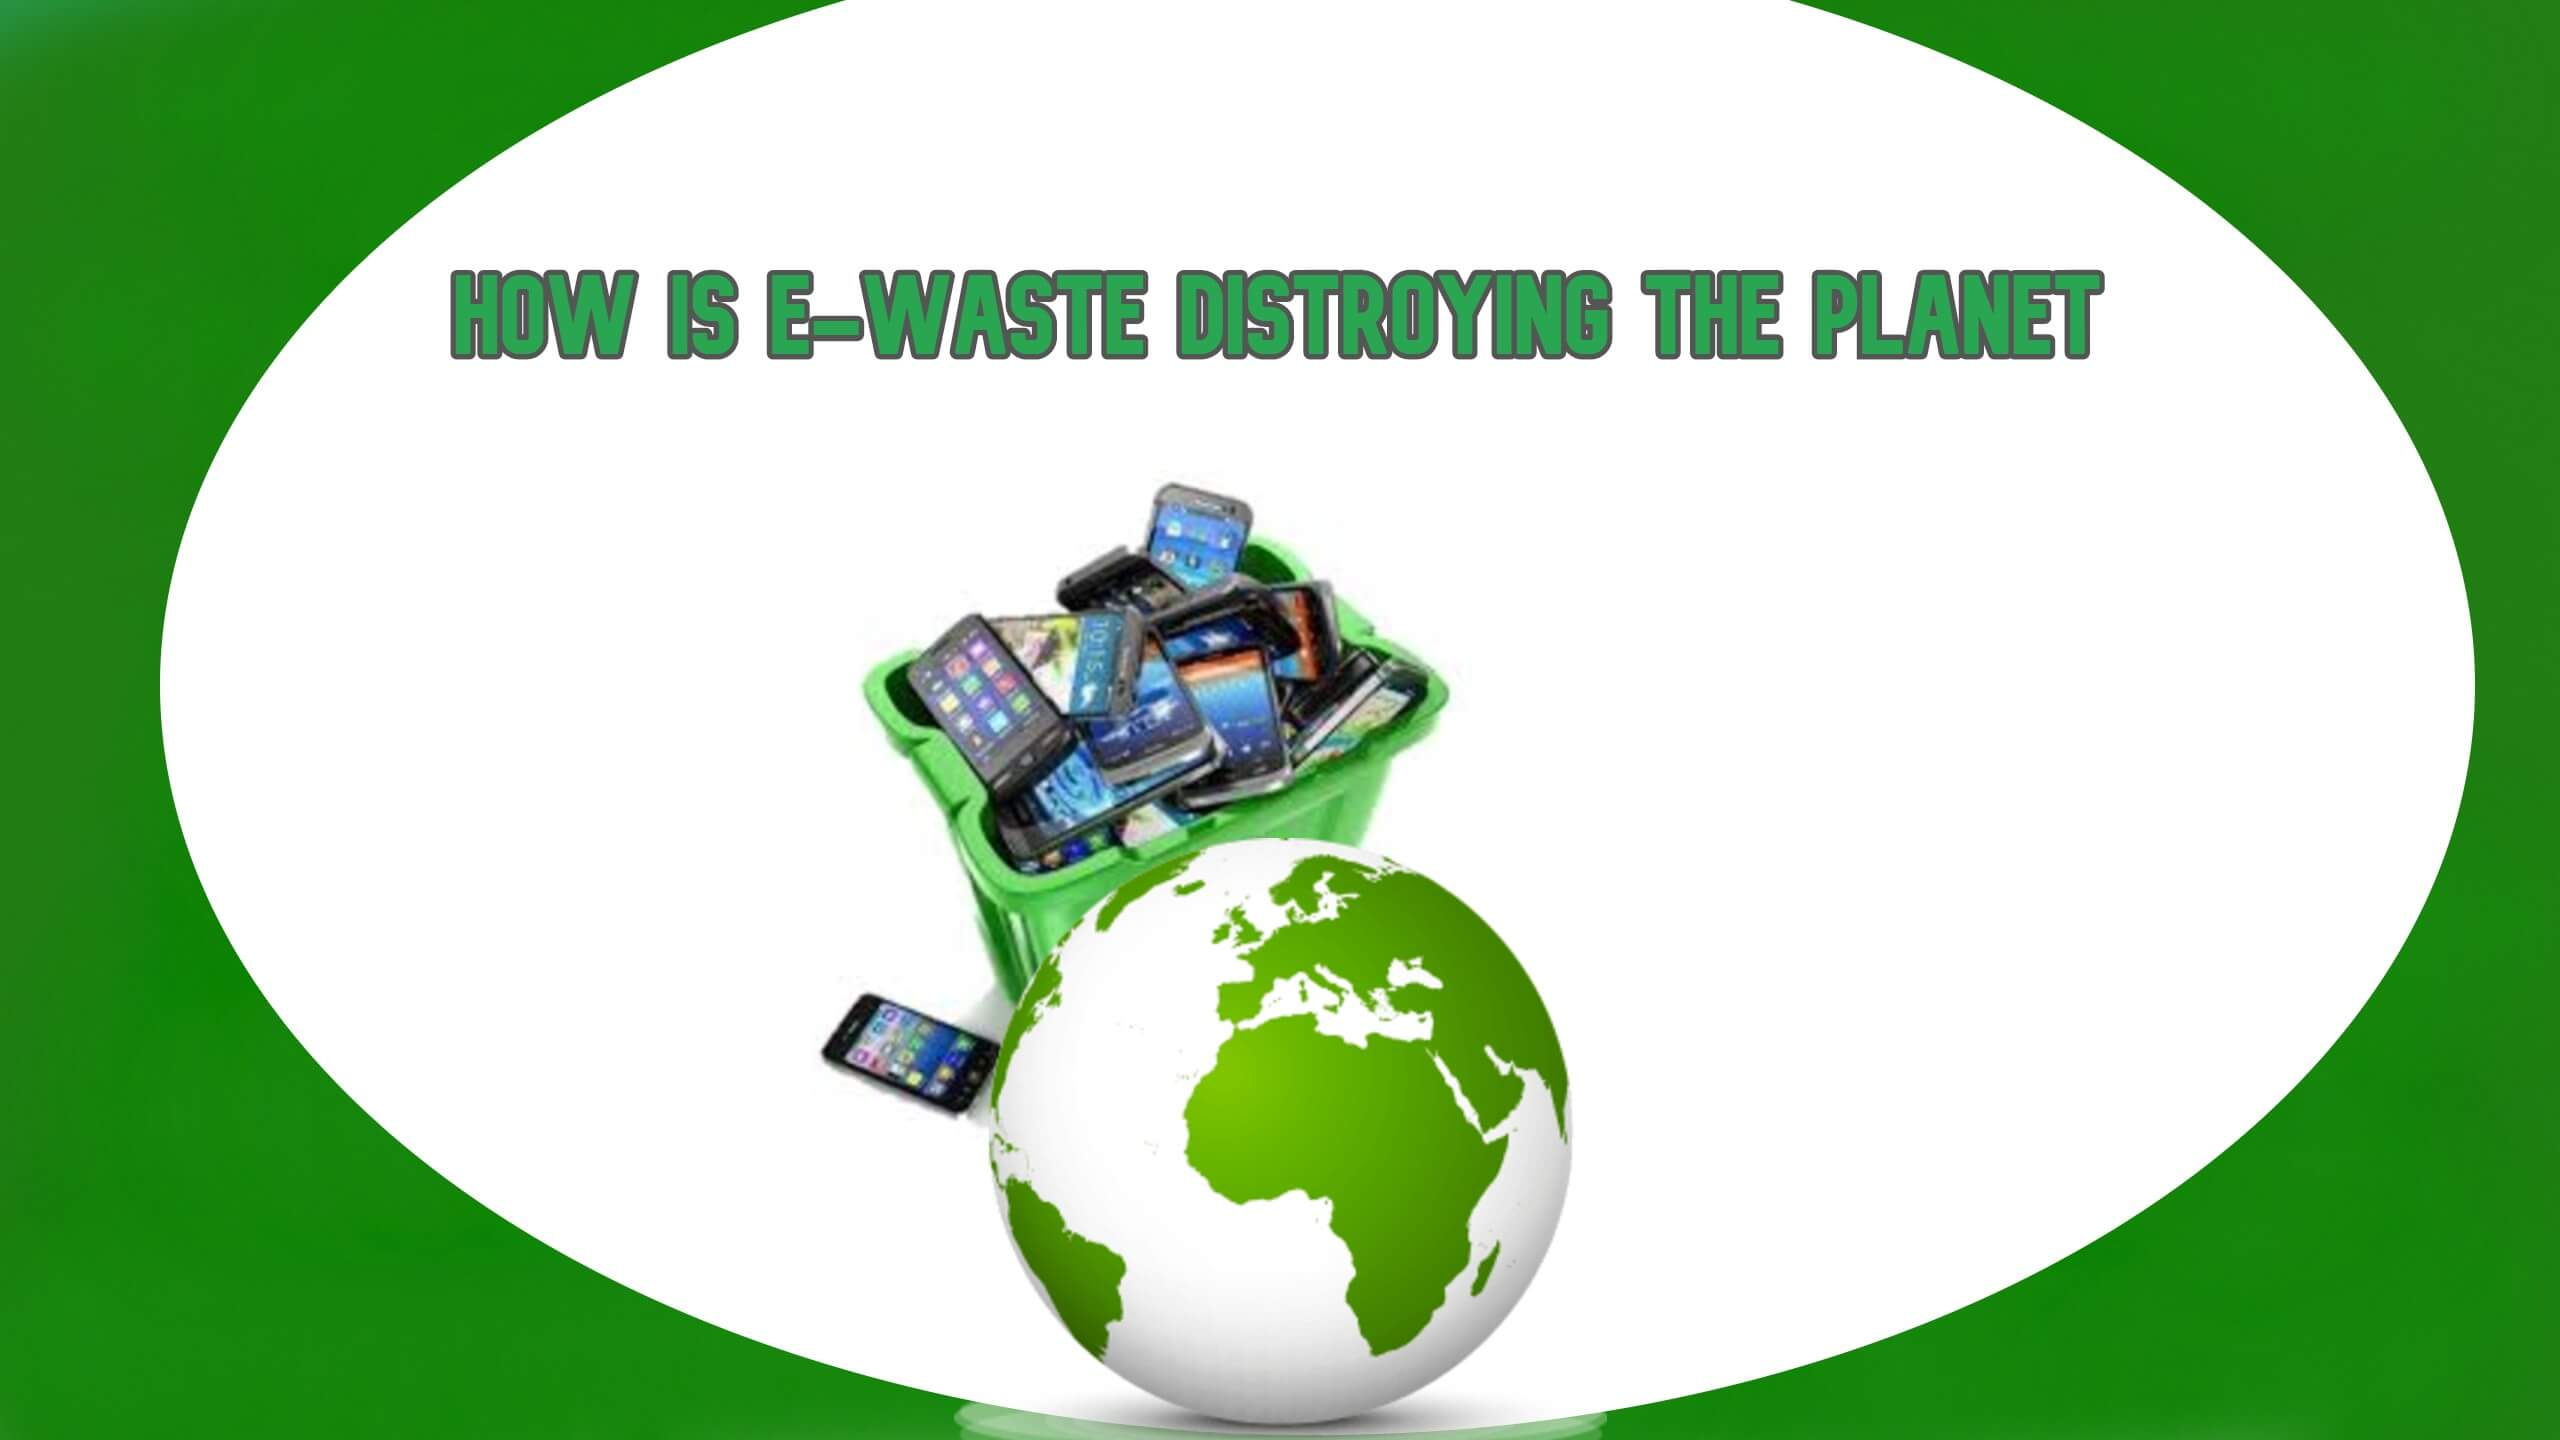 How is E-waste destroying our planet